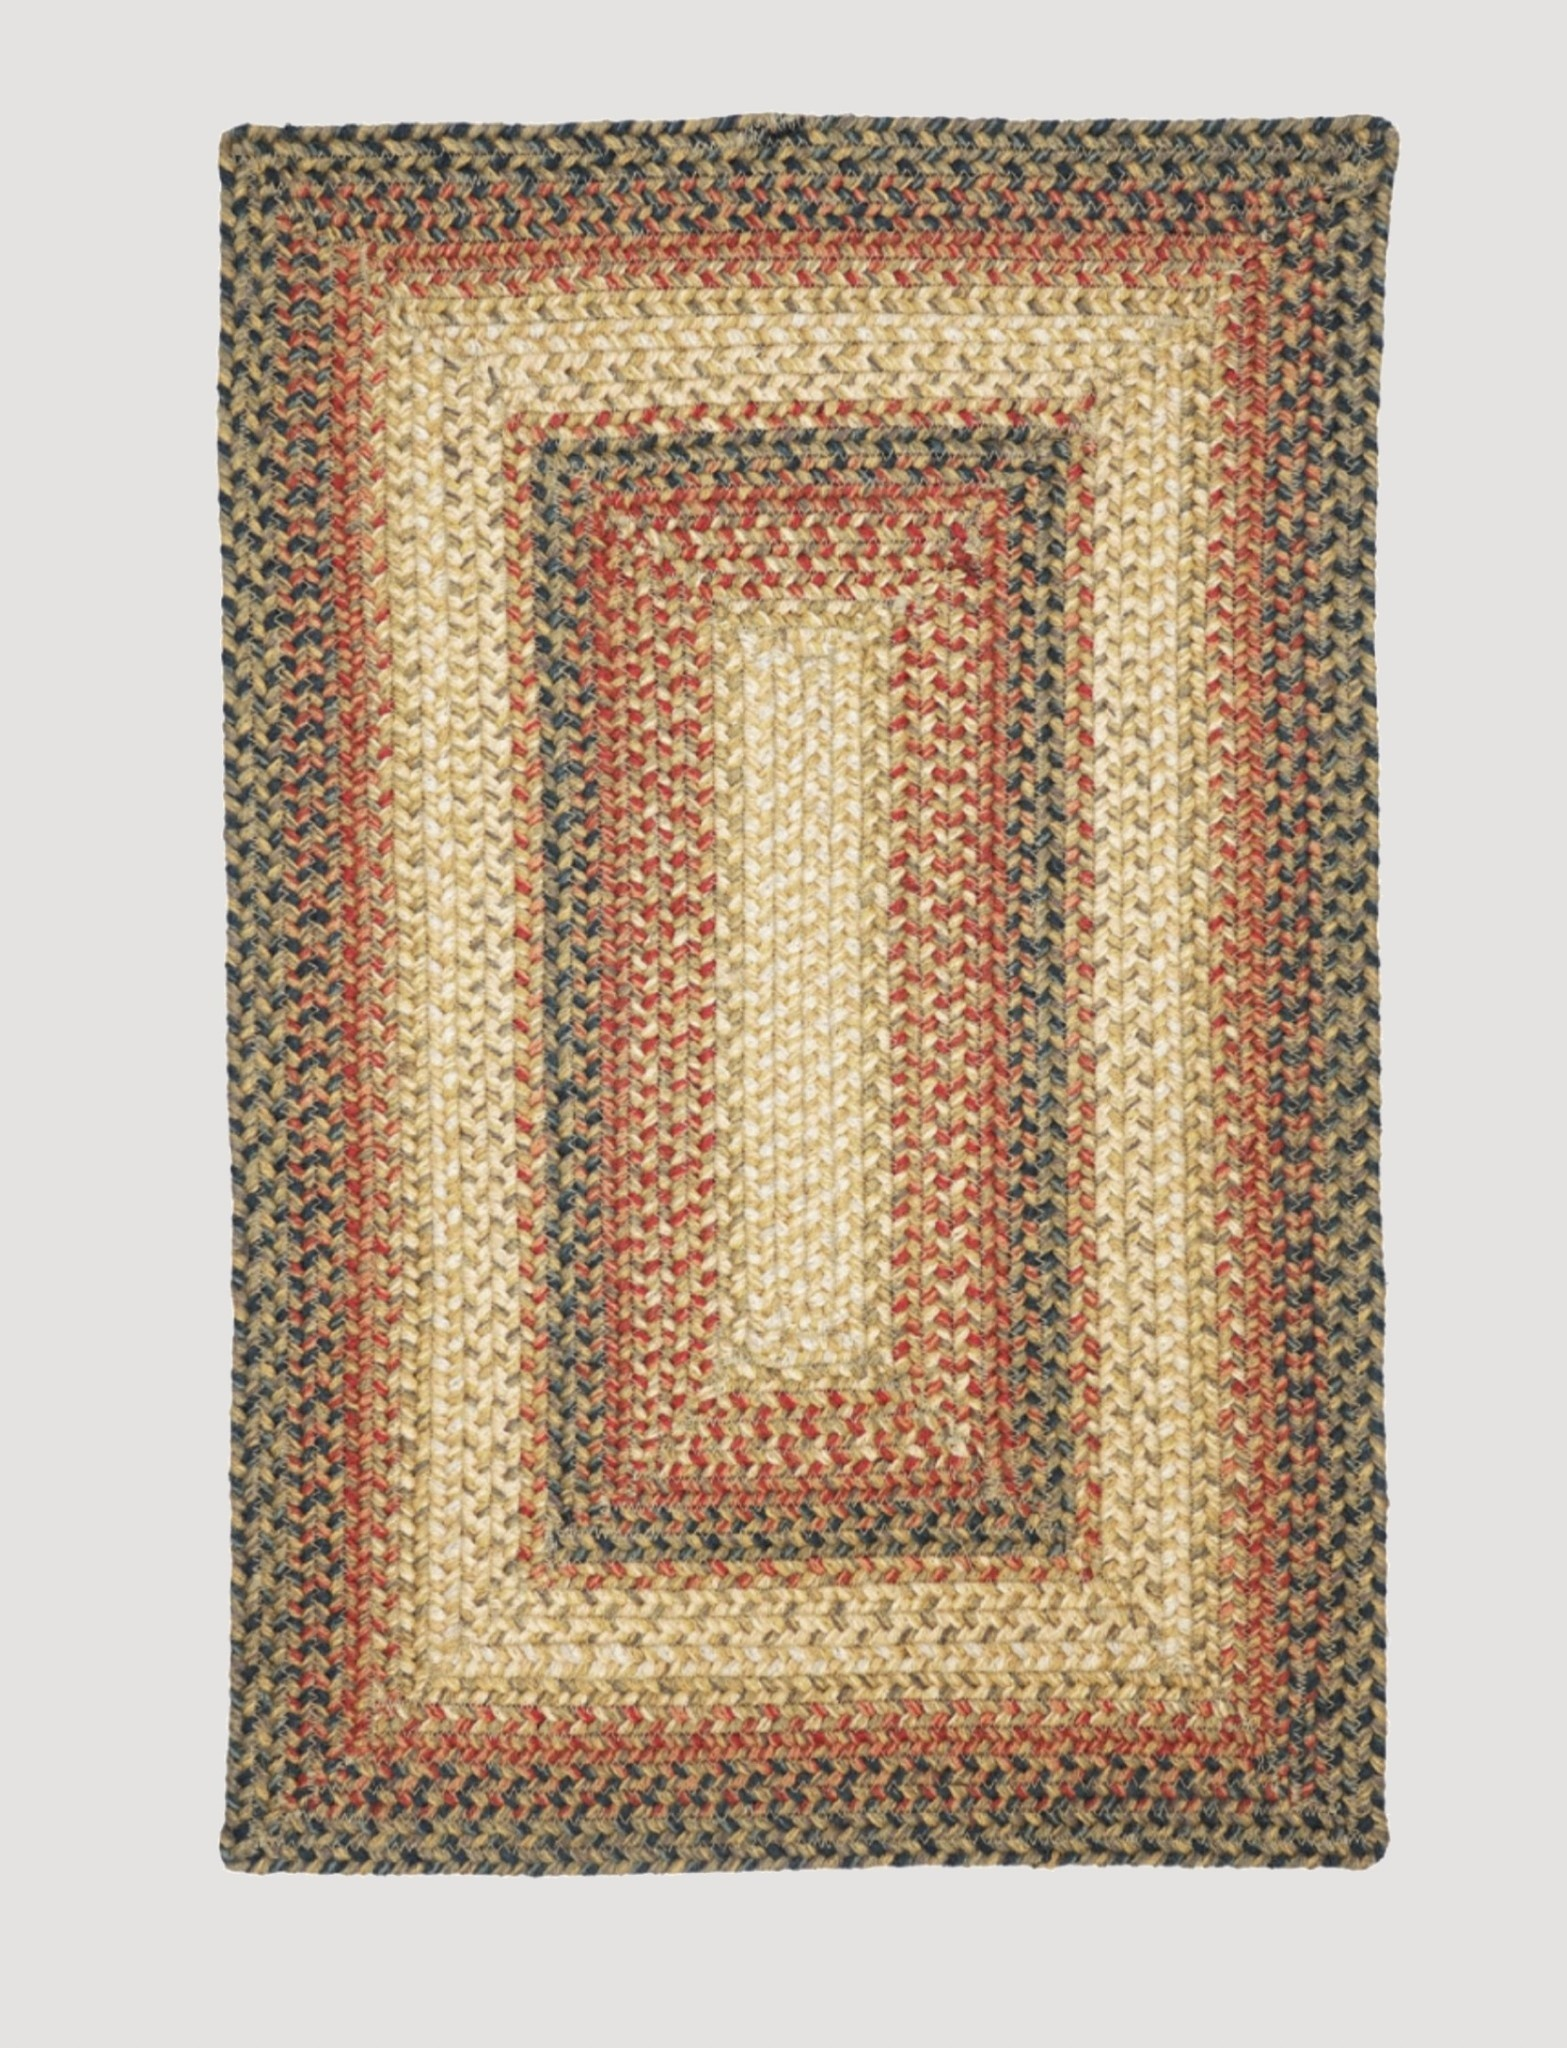 Homespice Decor Russett Jute Braided Rug